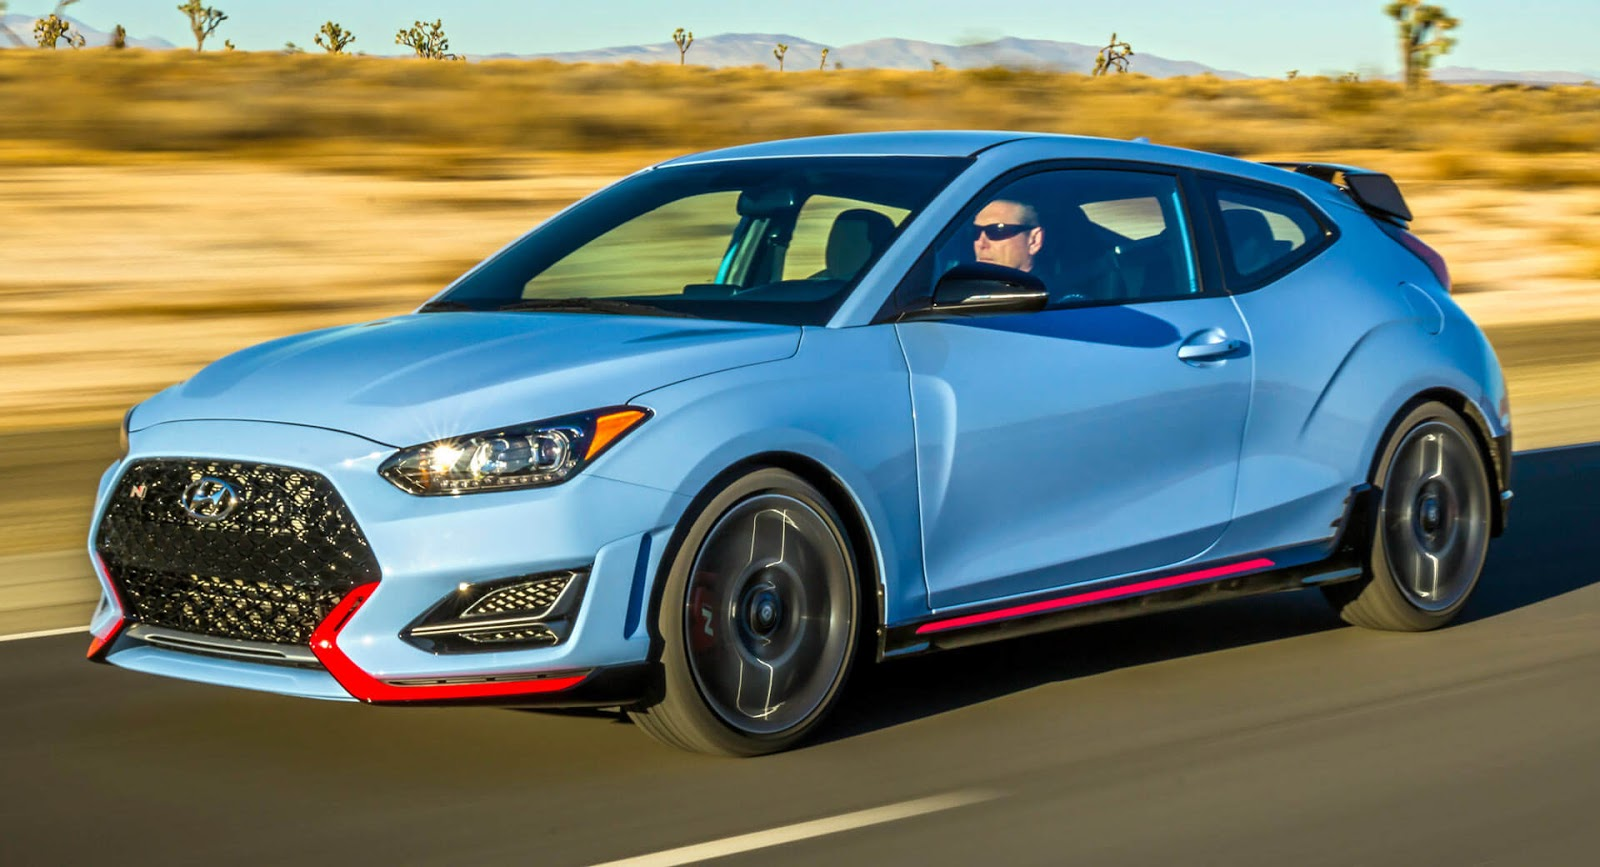 Bmw I30 >> Driving Enthusiasts, Rejoice: Hyundai N Sport Models Incoming - autoevolution